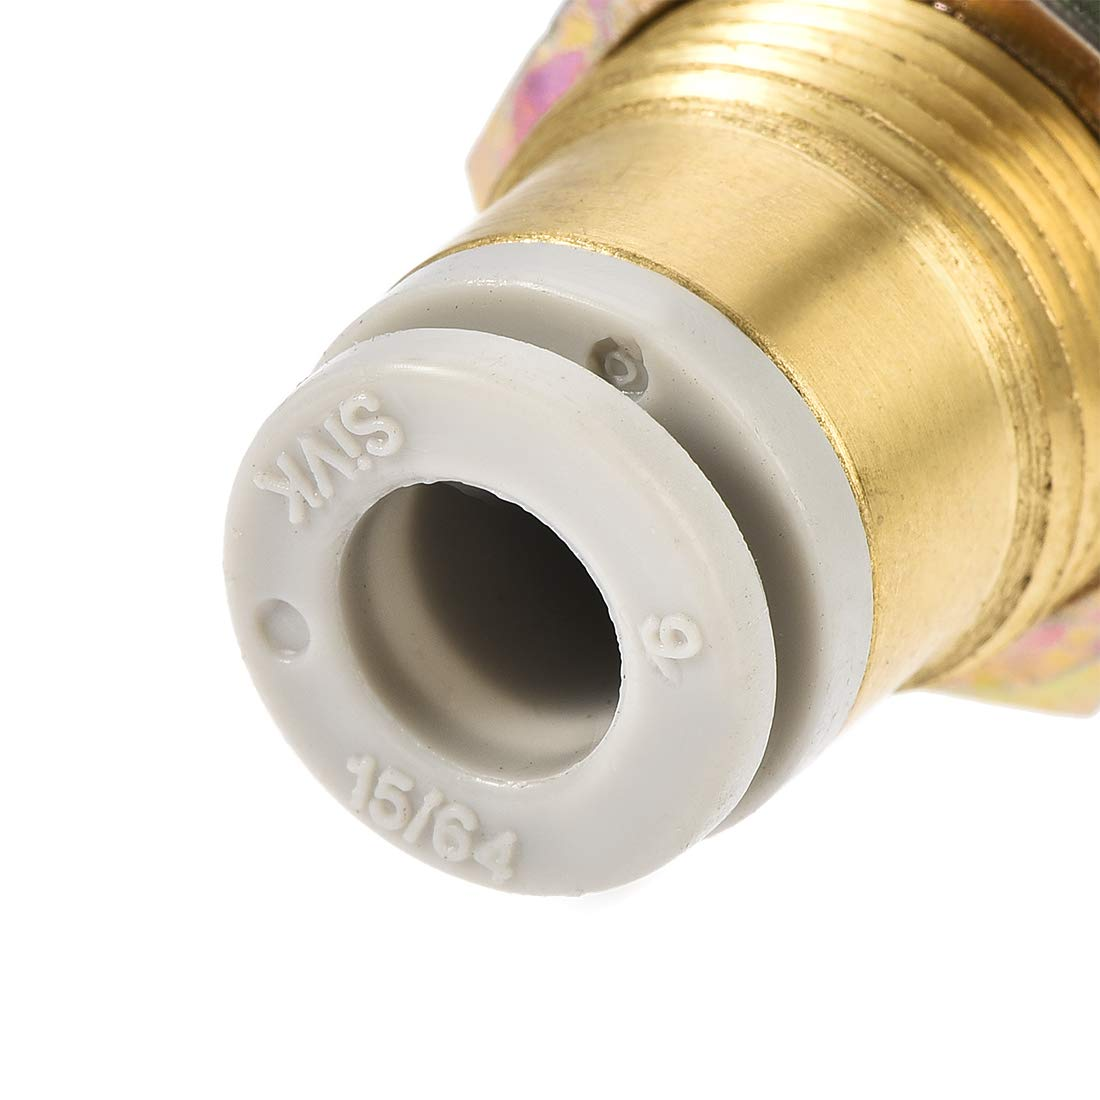 uxcell Pneumatic Push to Connect Tube Fittings Bulkhead 6mm Tube OD x M14 Male